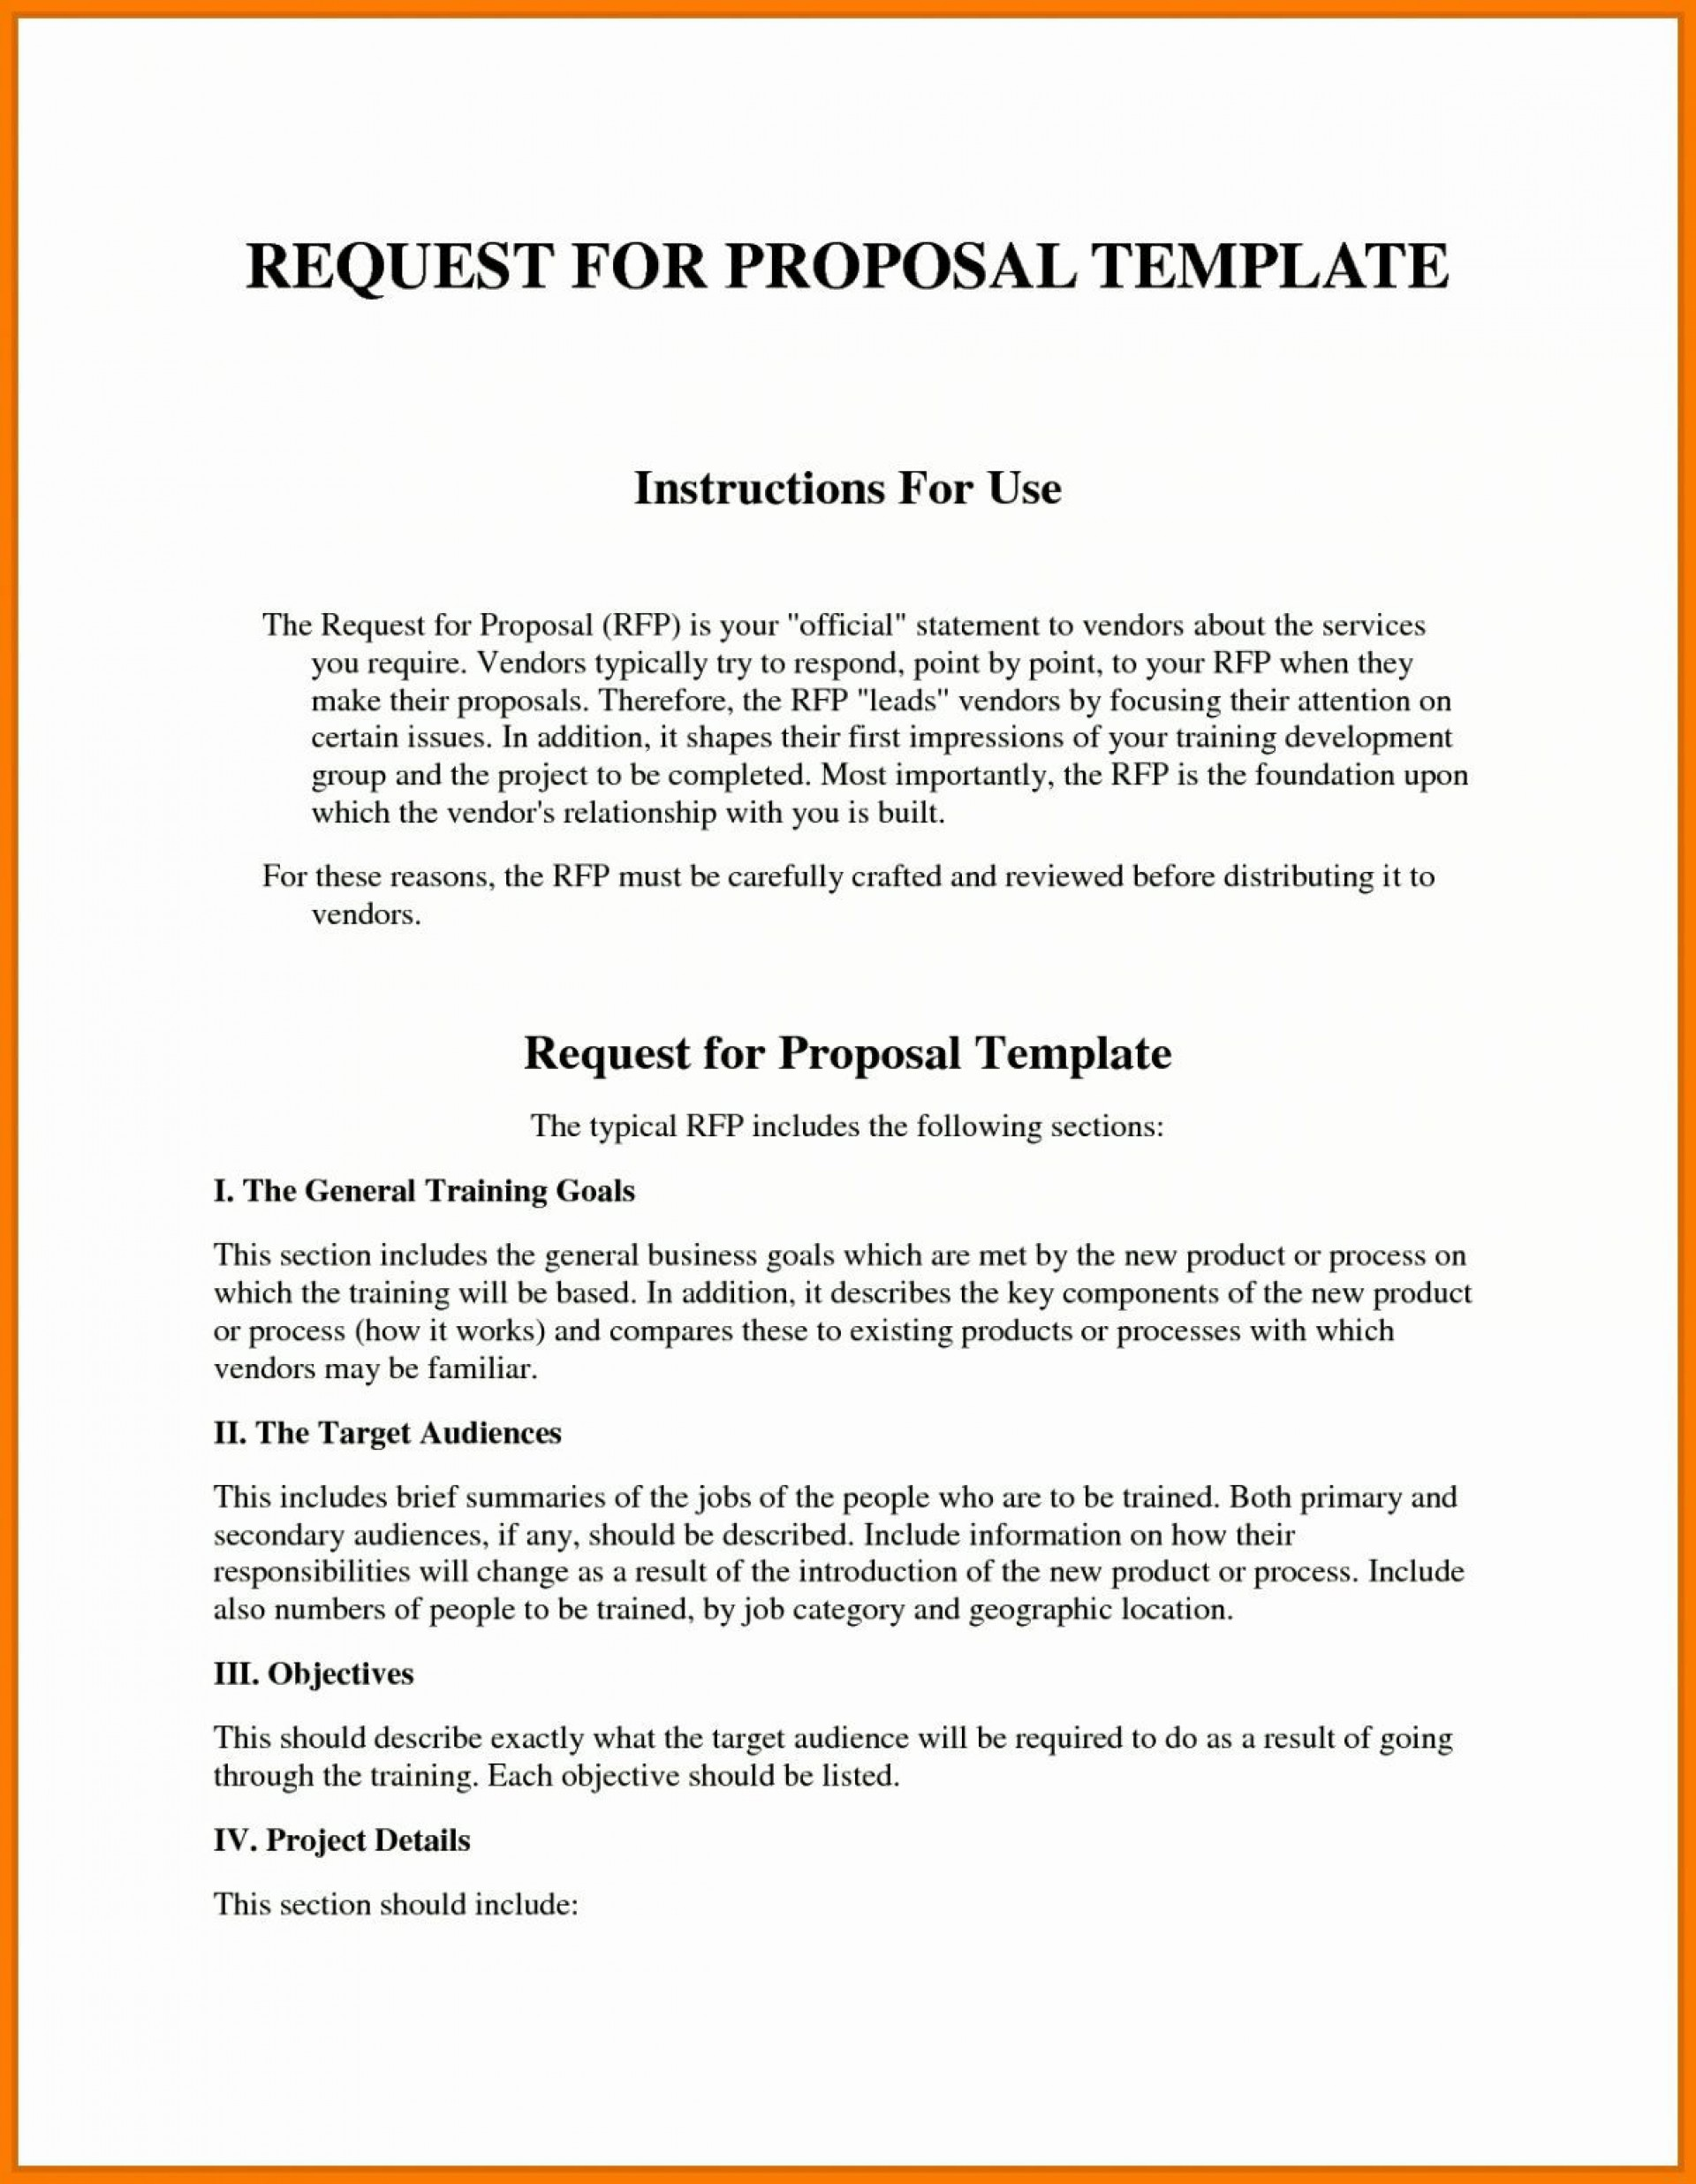 003 Marvelou Request For Proposal Template Construction High Def  Rfp Residential1920